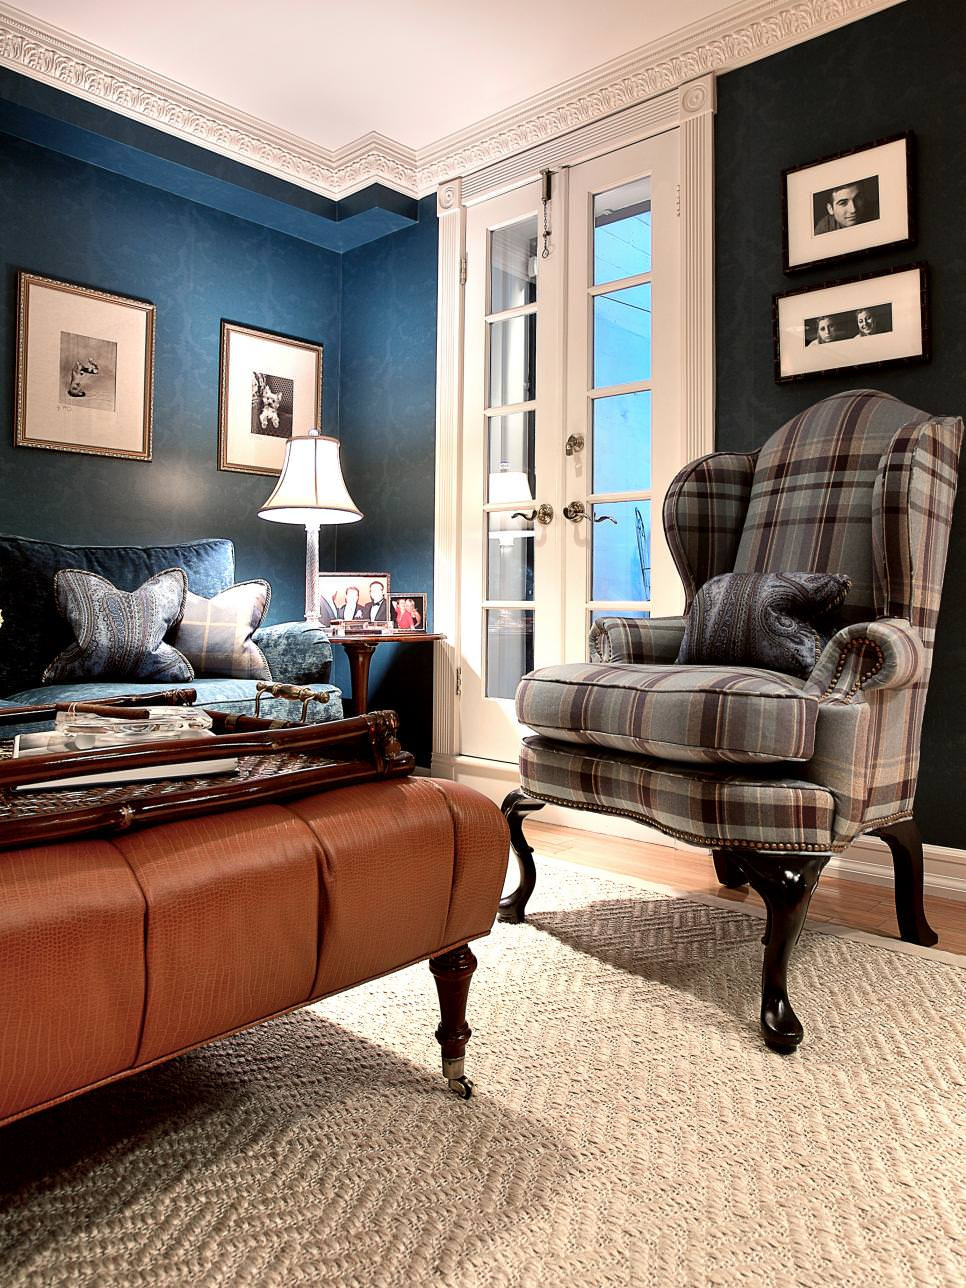 Best ideas about Blue Living Room . Save or Pin 20 Blue and Brown Living Room Designs Decorating Ideas Now.